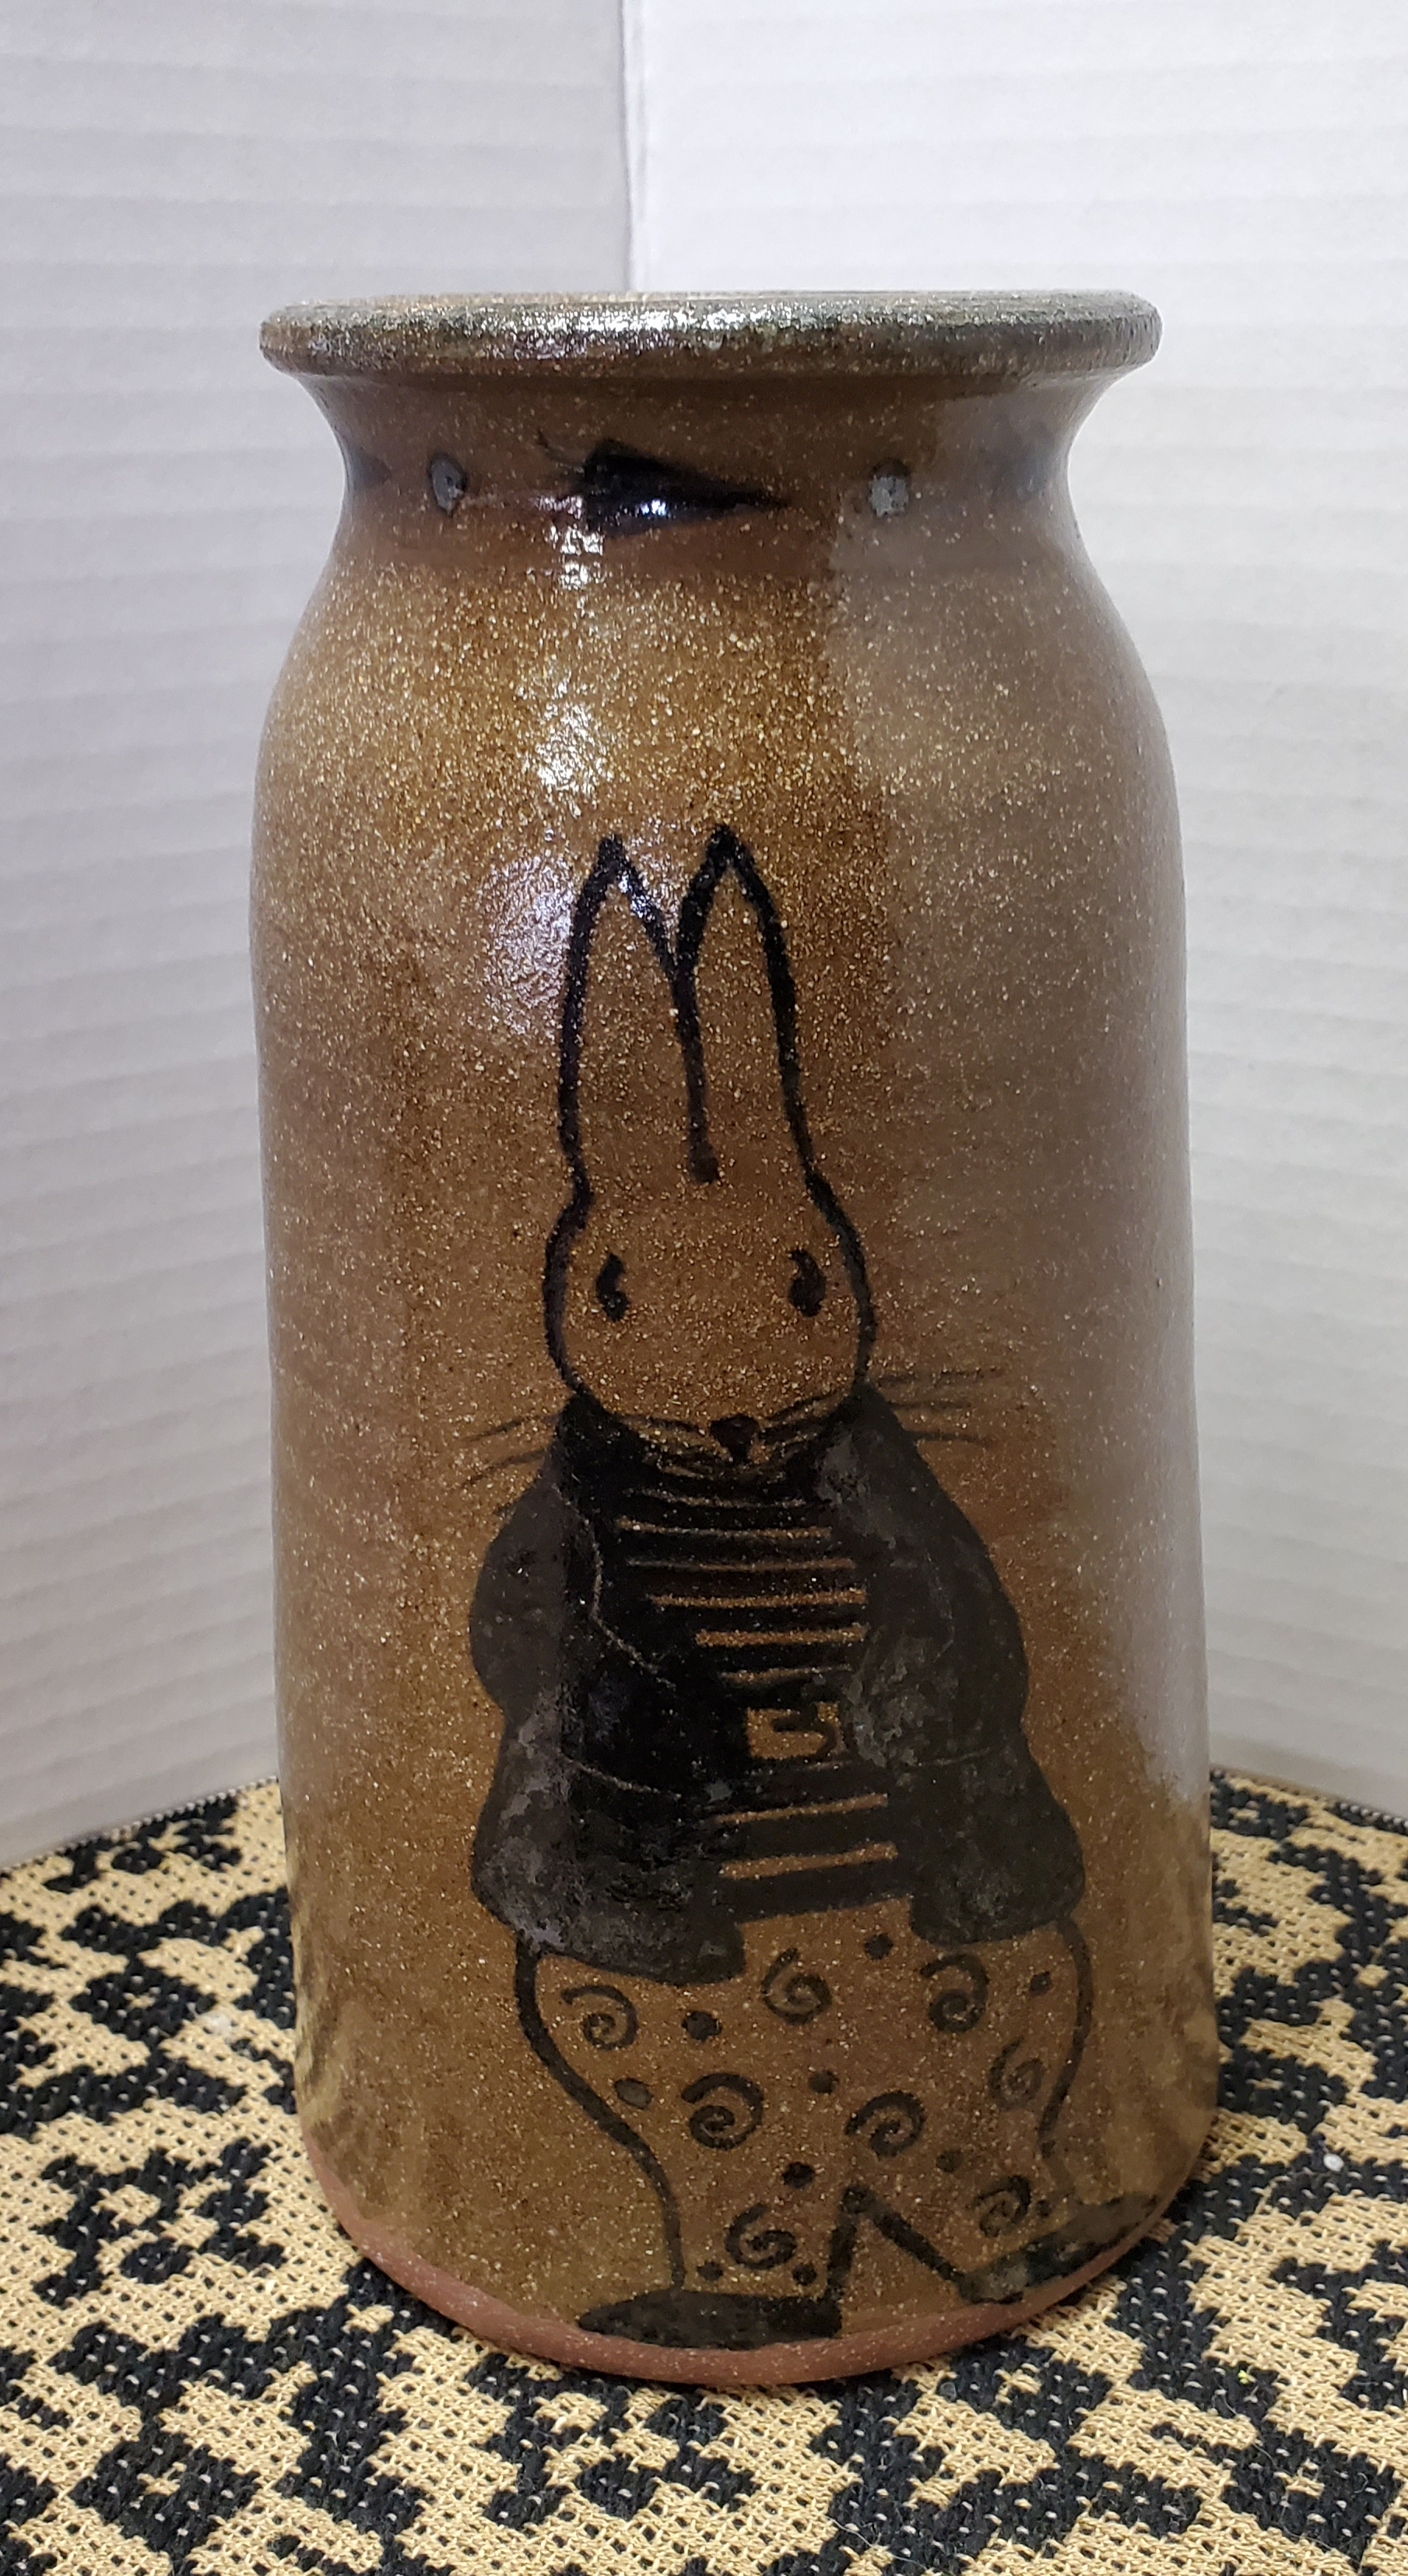 Large Canning Crock with Bunny in Jacket